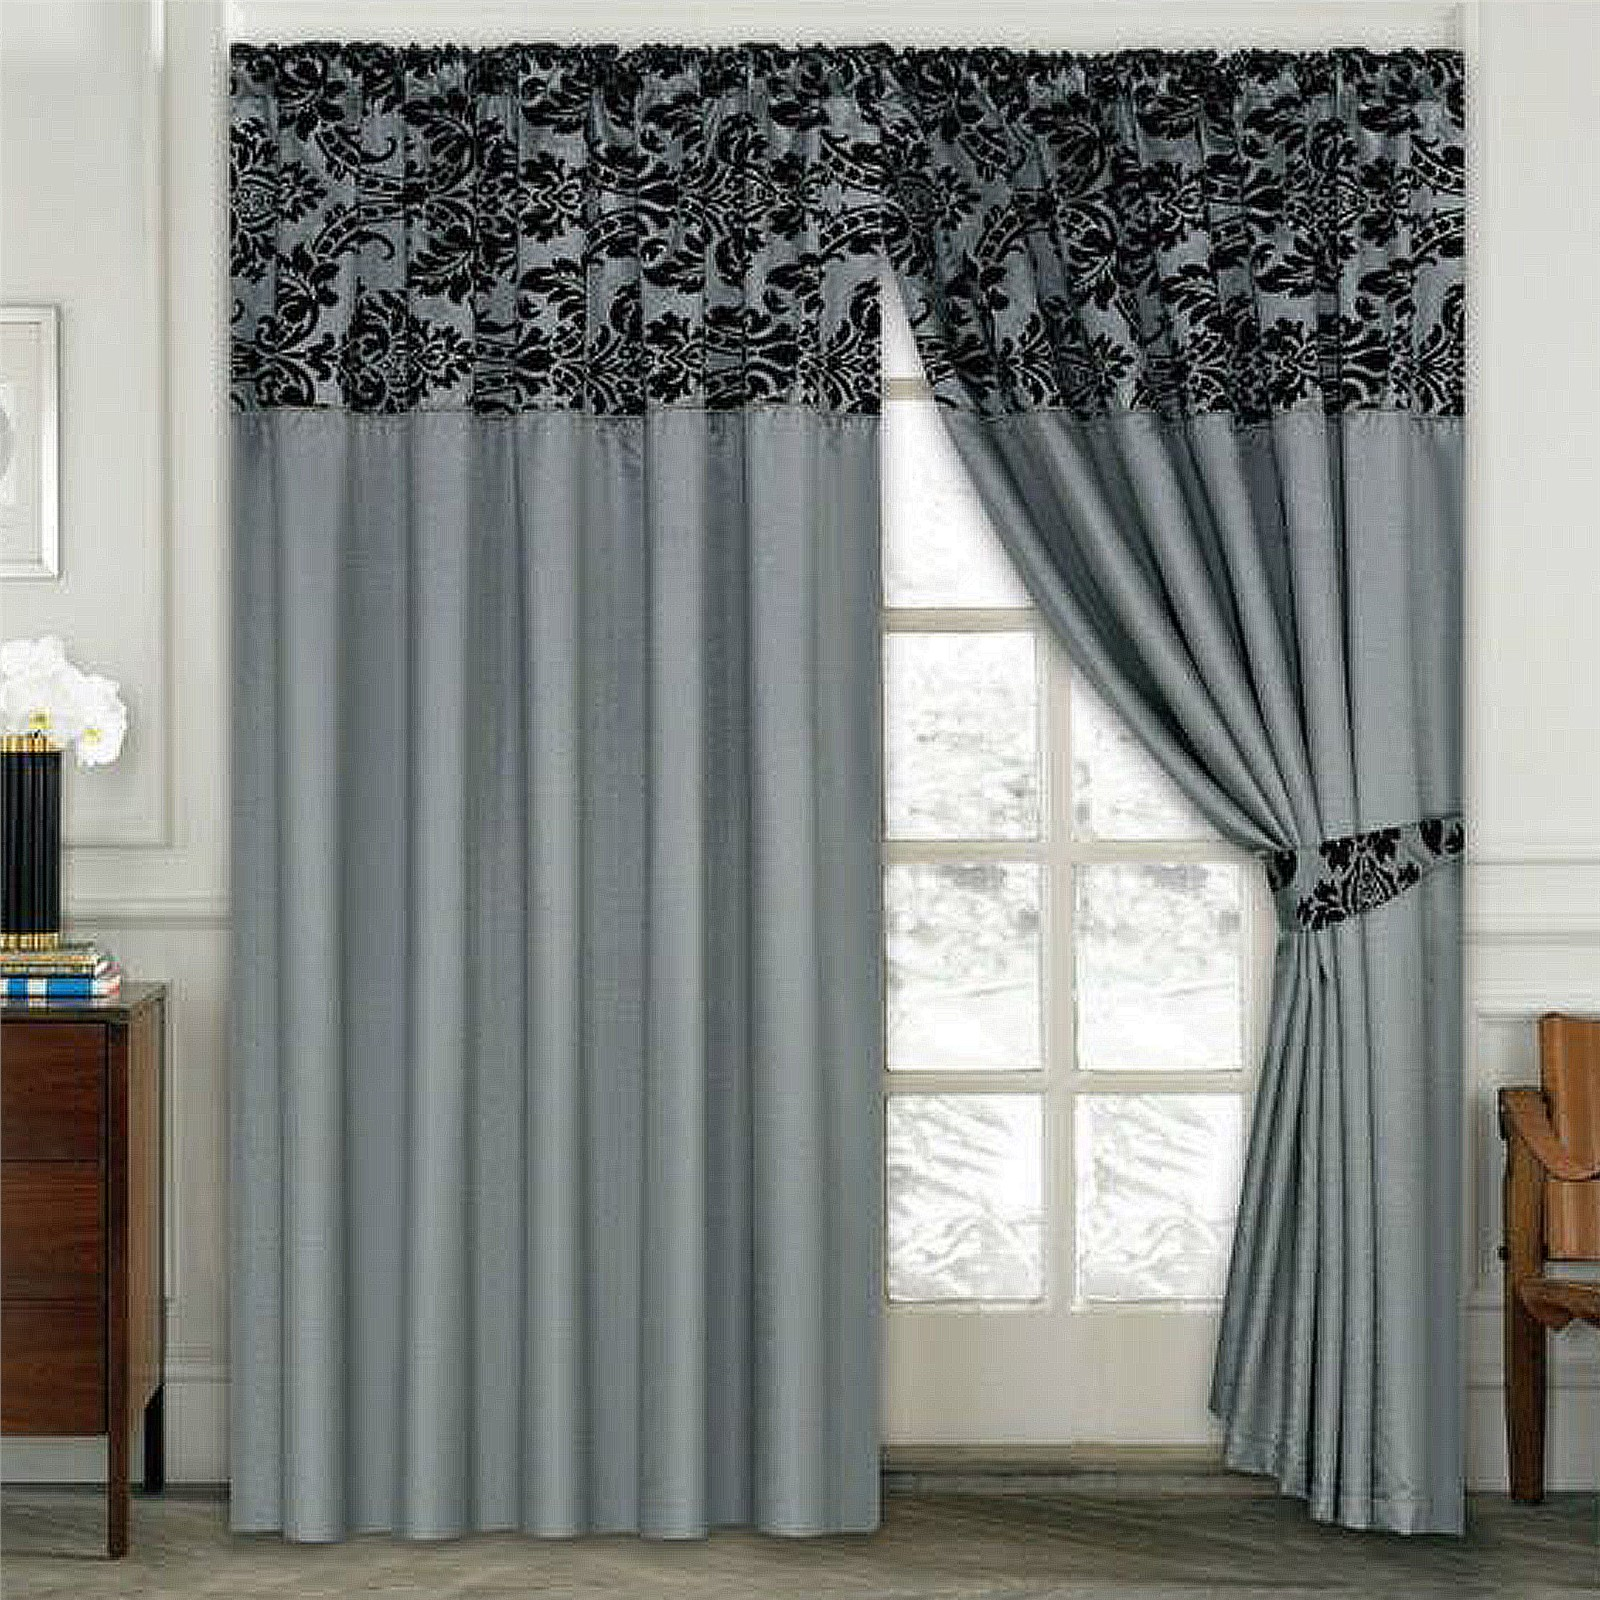 Bedroom Comforter And Curtain Sets With Curtains Comforters Bedding